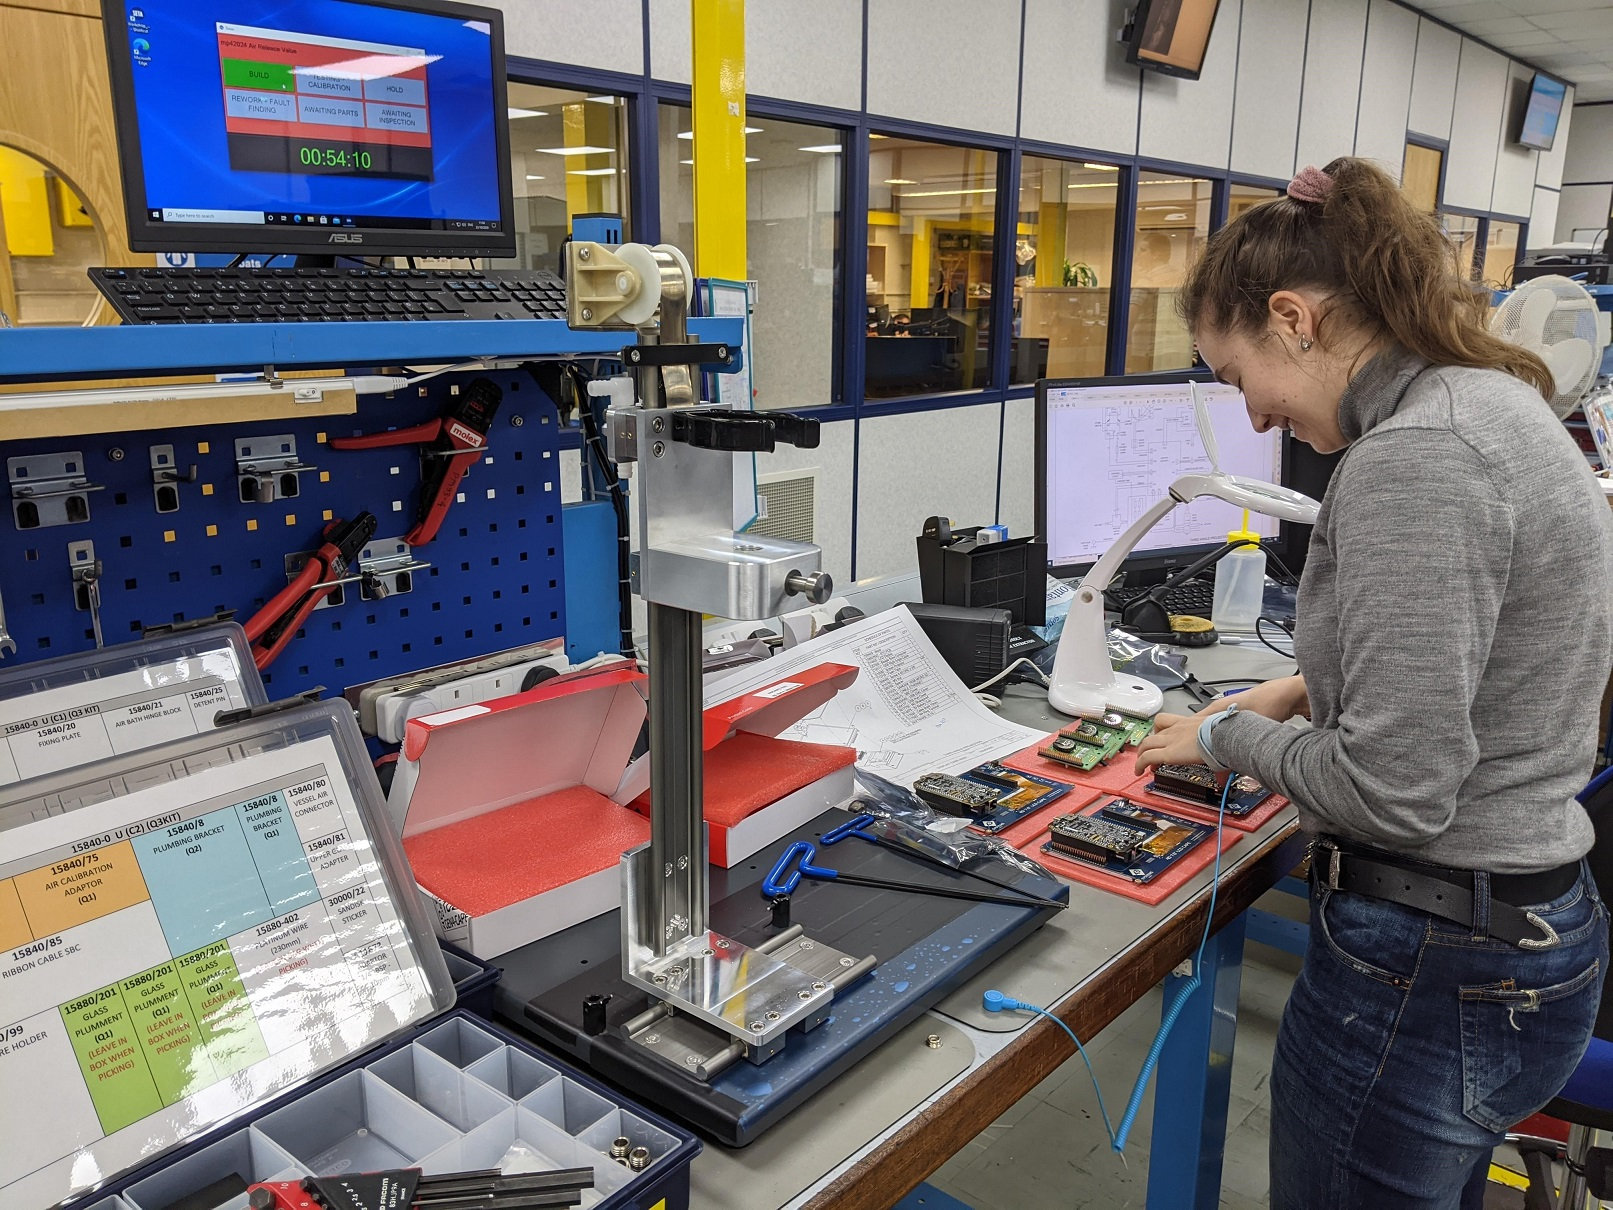 Lisa working on a circuit board during her engineering placement at Stanhope-Seta. She is surrounded by equipment and computers